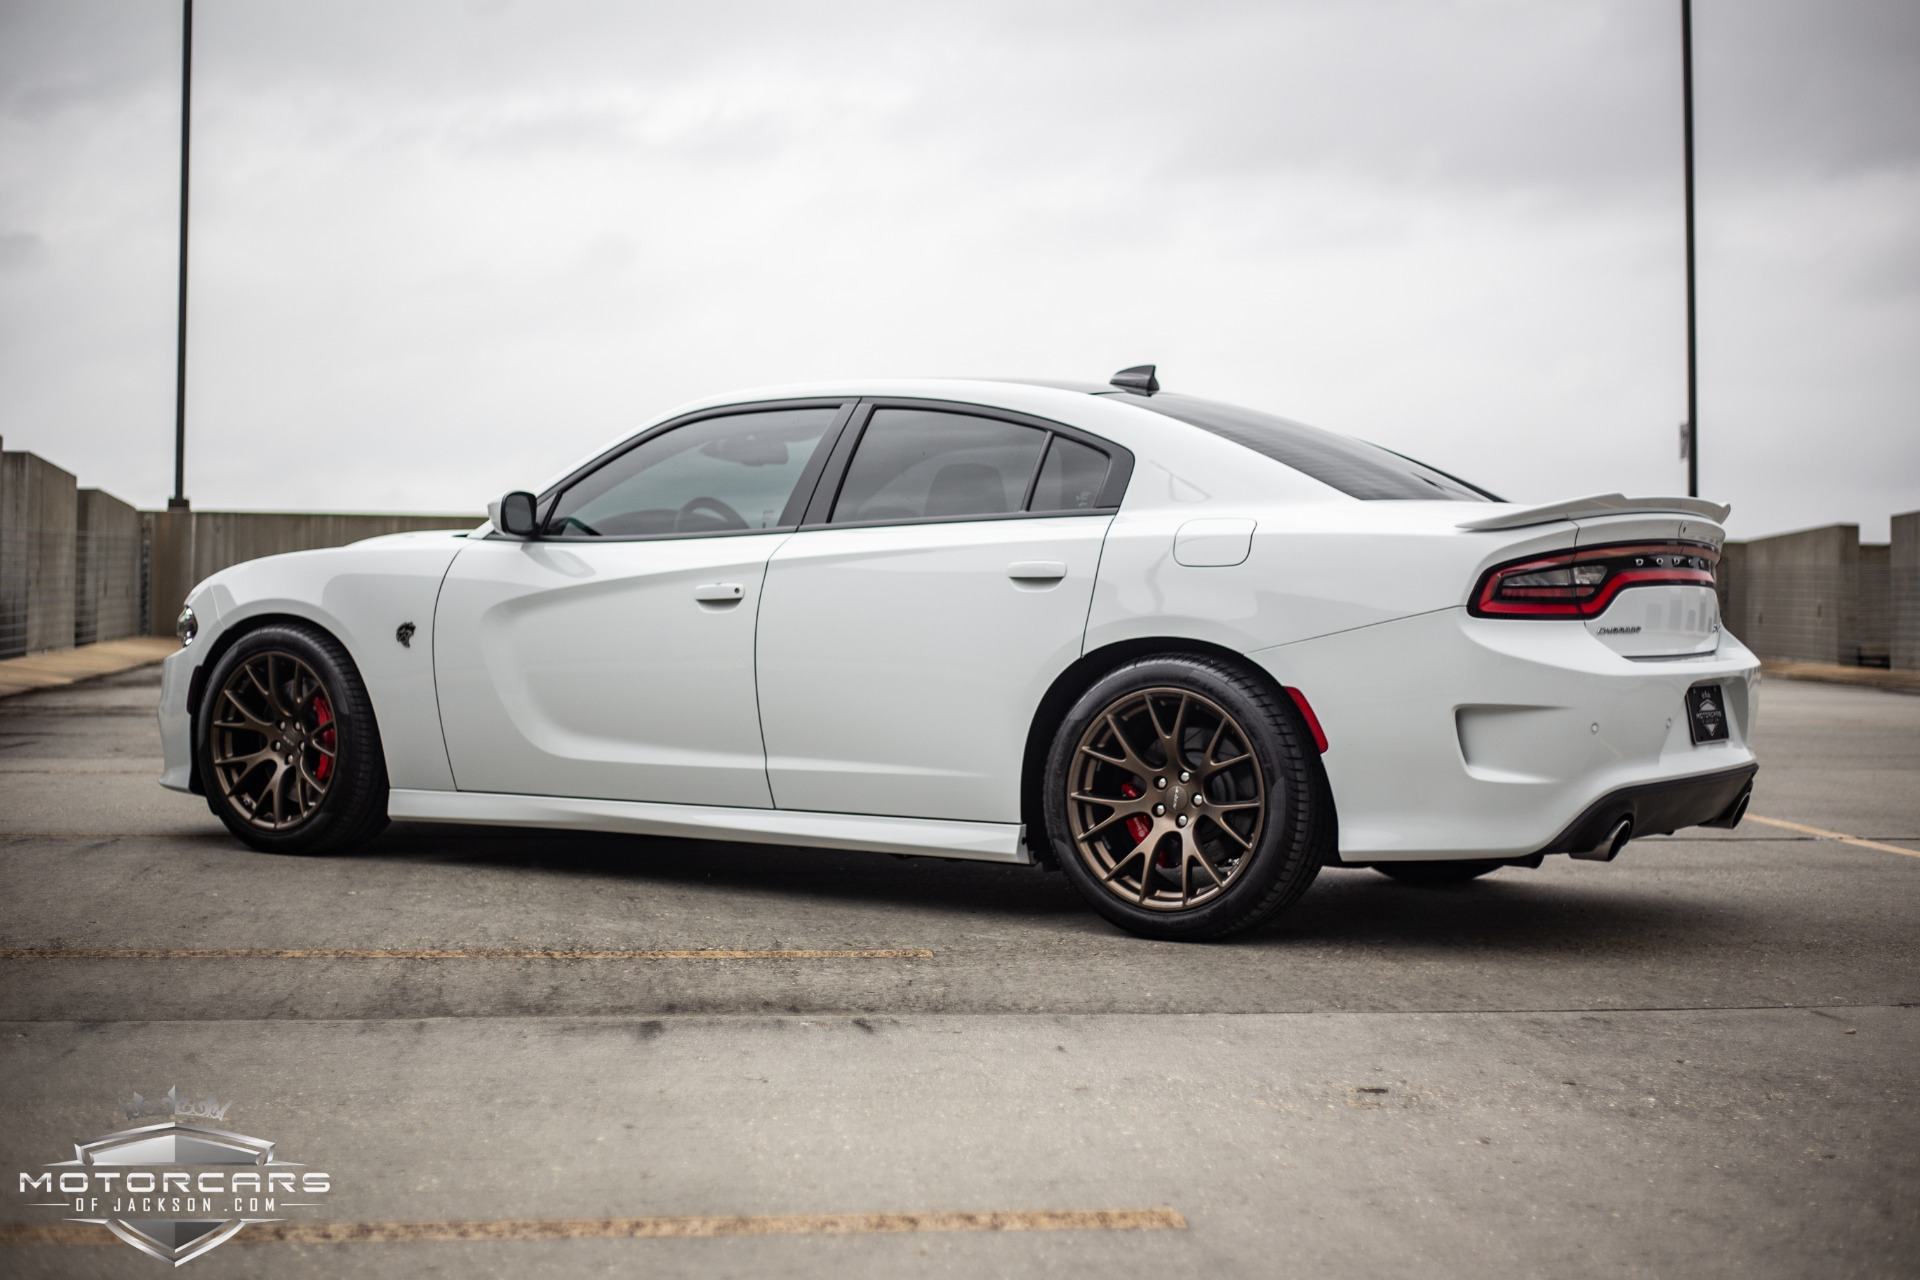 Used-2015-Dodge-Charger-SRT-Hellcat-Jackson-MS